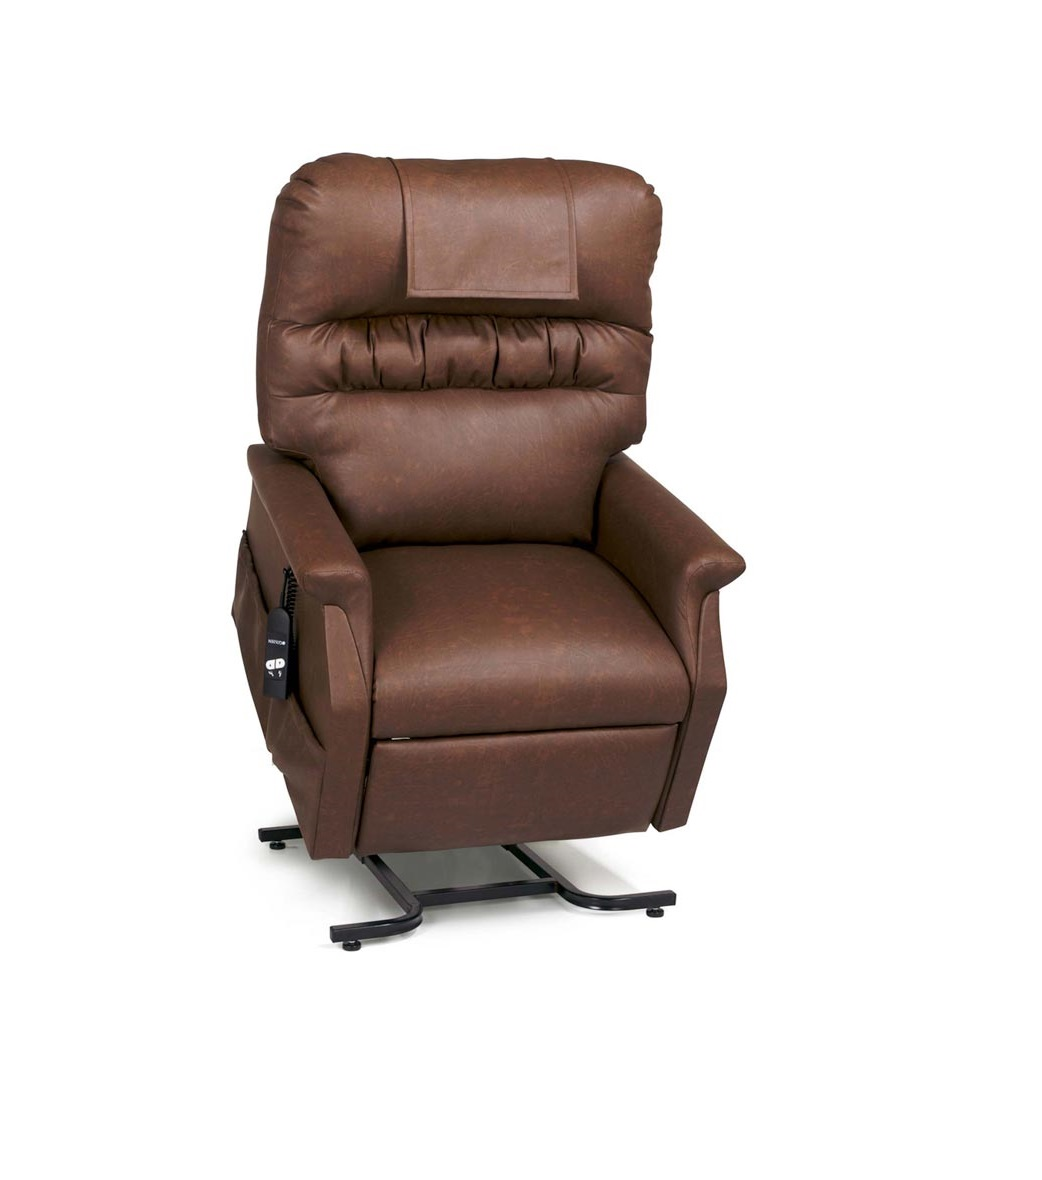 Power Lift Recliner Rental default image. A Golden Technologies Monarch lift chair in the upright position. Chestnut colored, vinyl fabric.